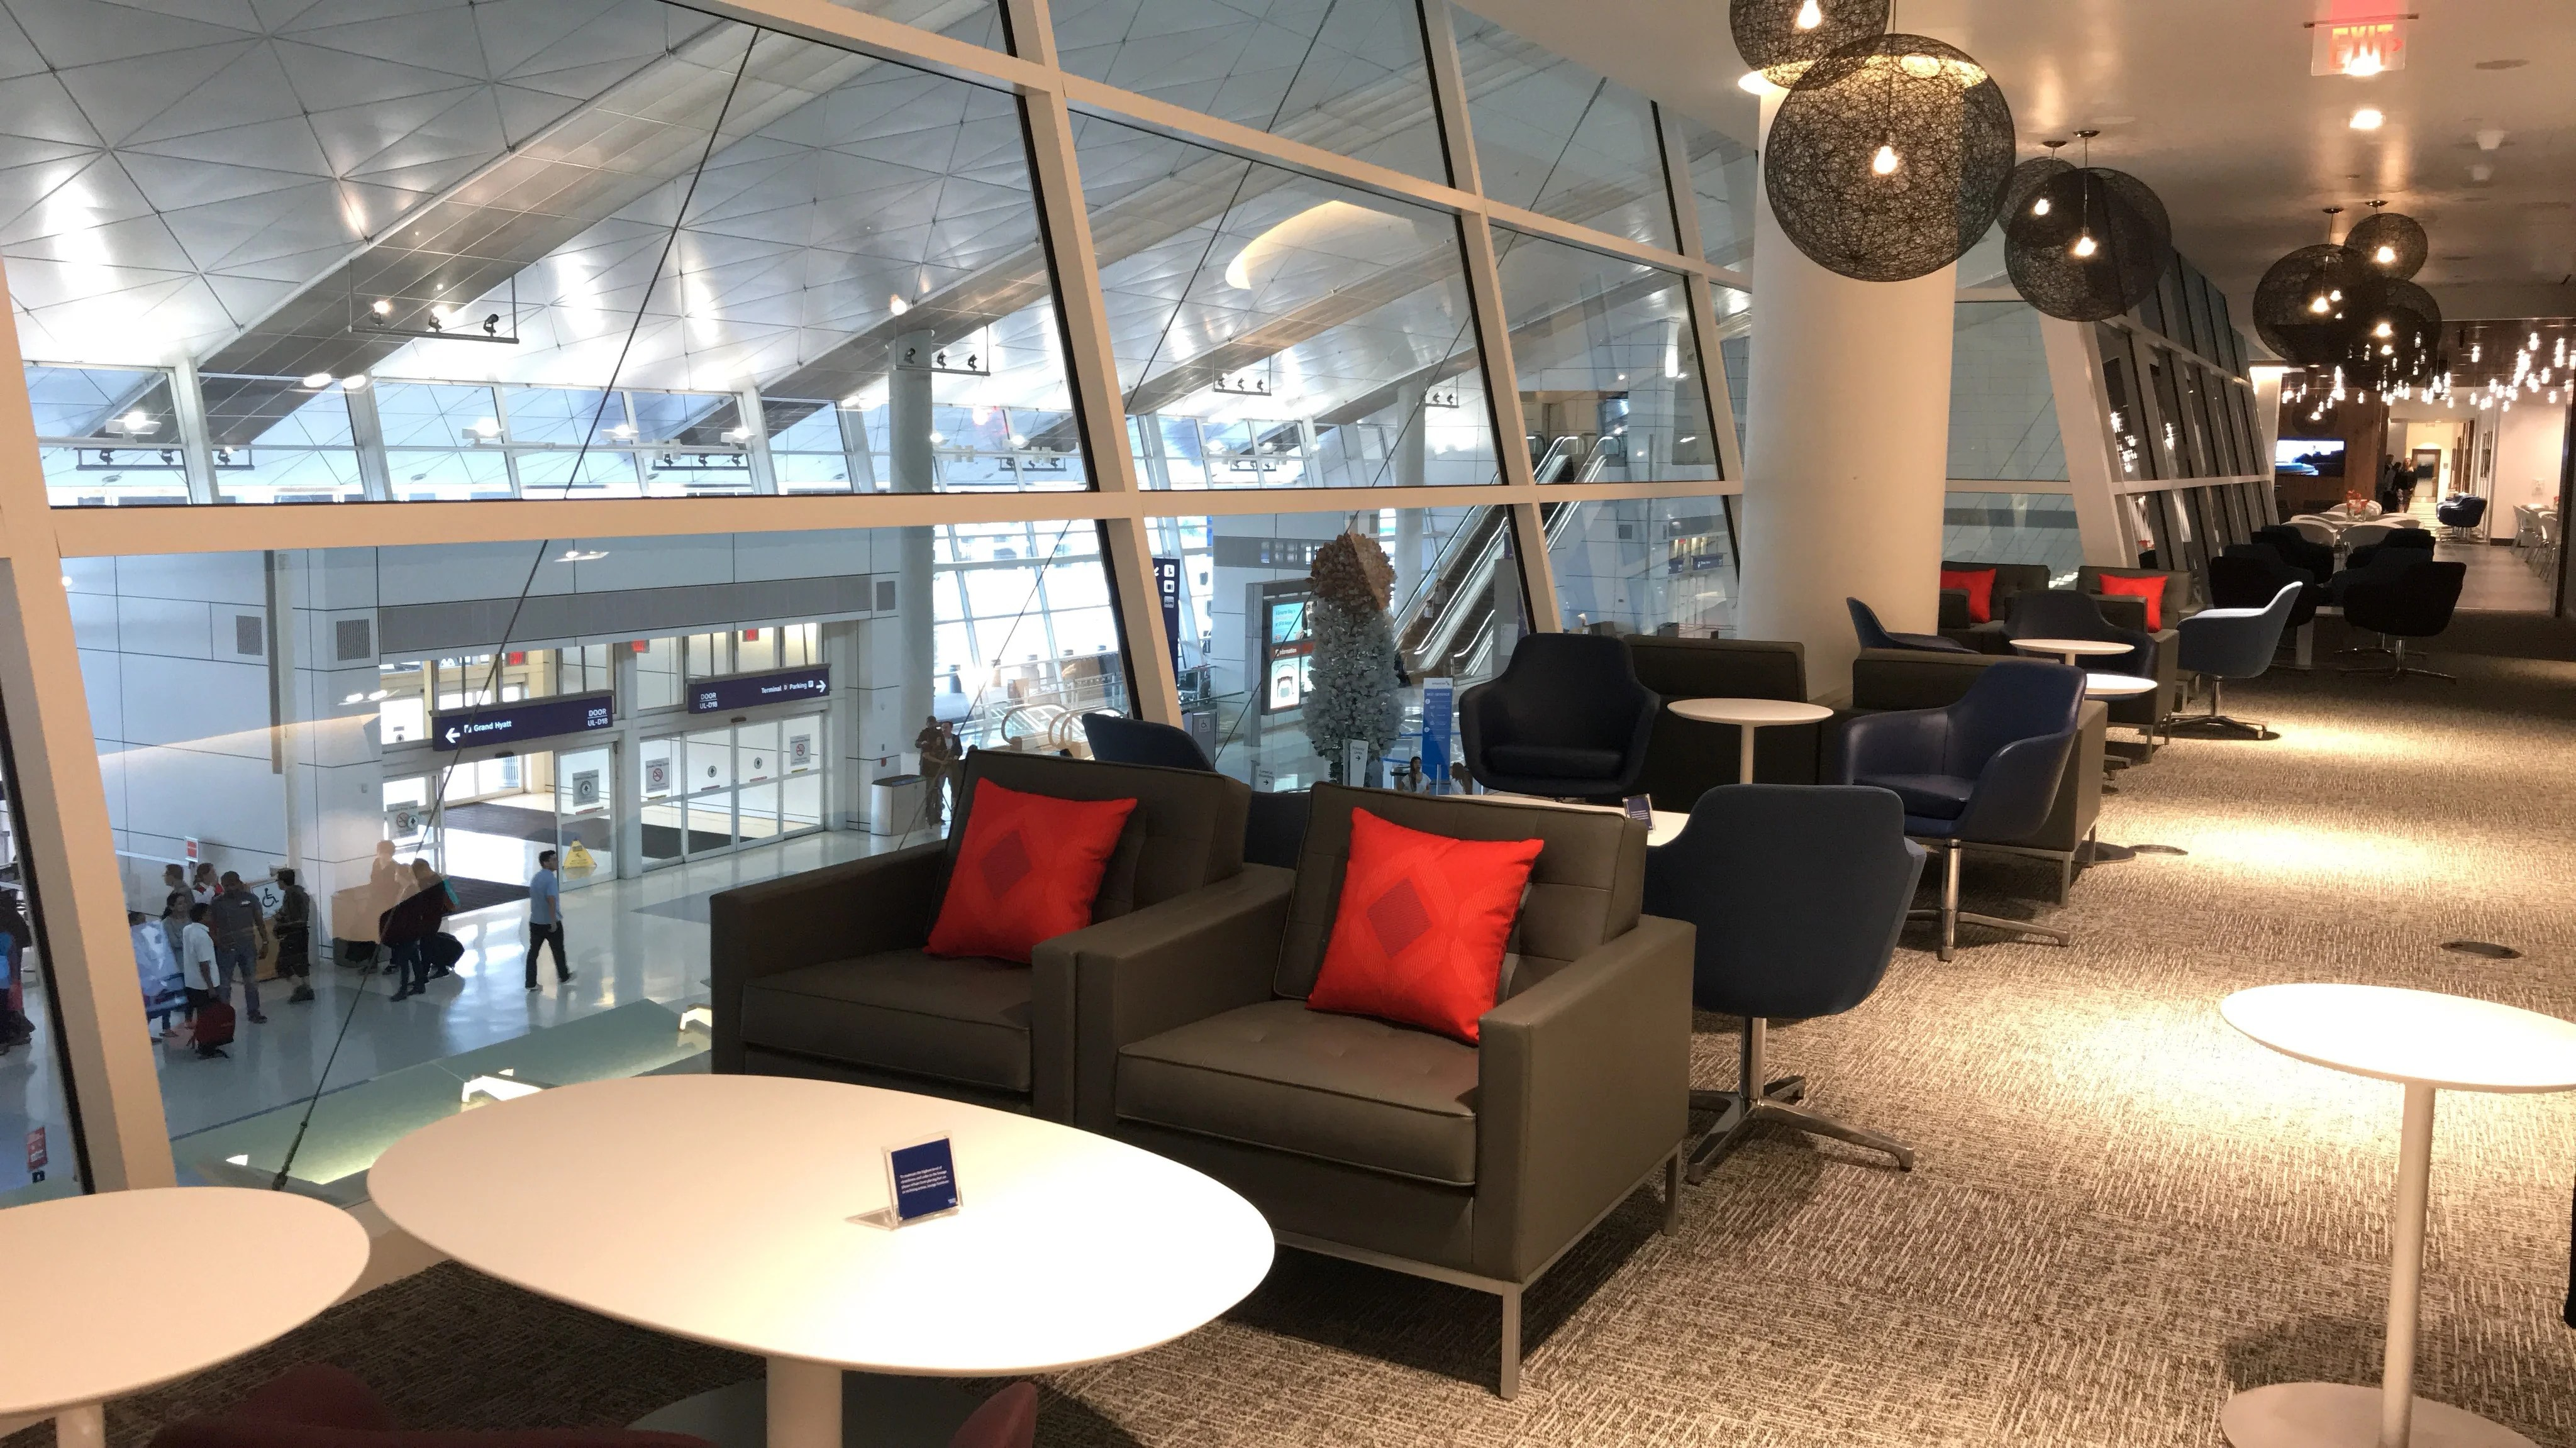 Tpgs sneak peek behind the scenes of the new dfw centurion lounge